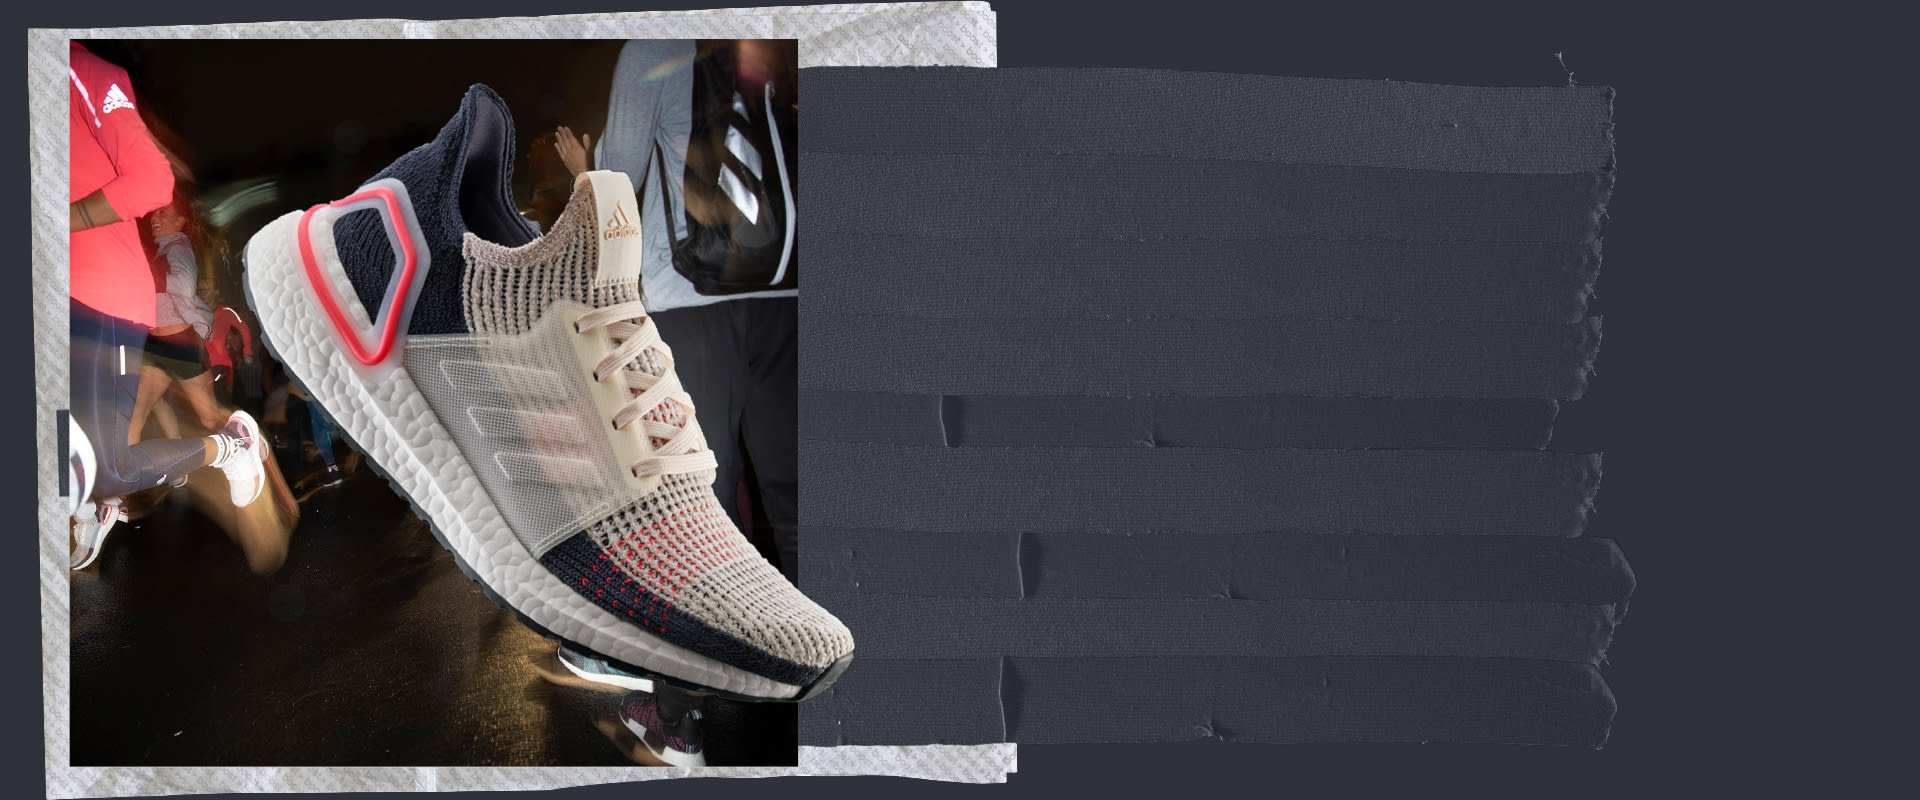 f085b2d76eb6f9 KNOWLEDGE IS POWER. Sign up to get notified about upcoming Ultraboost 19 ...